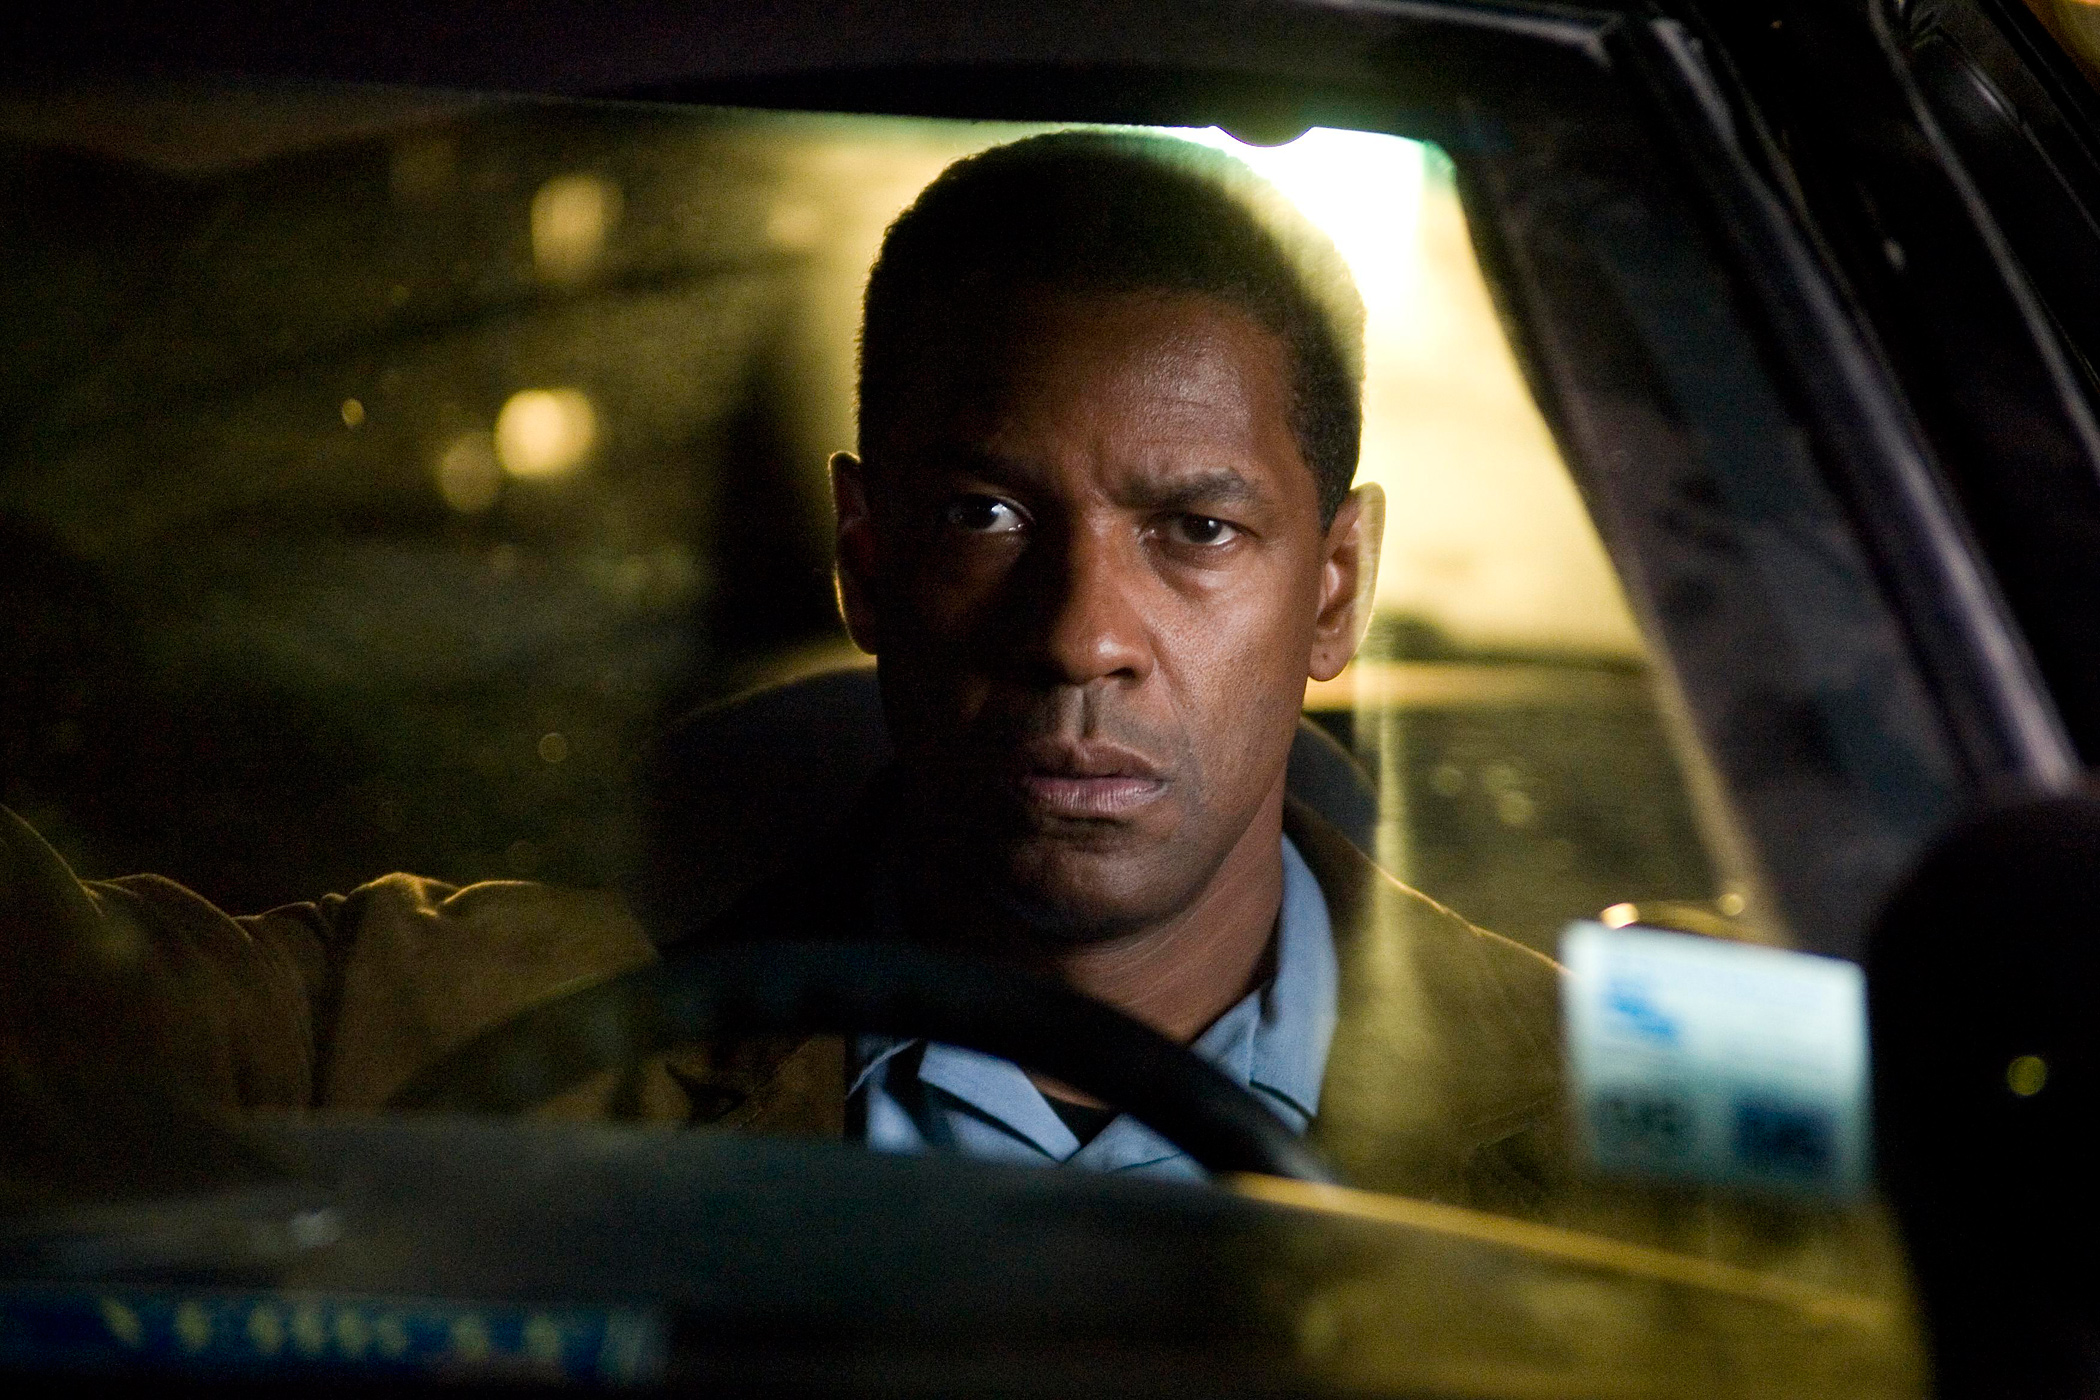 Deja Vu (2006) began Washington's trend toward less inspired action roles that might have been better suited for a less talented actor.